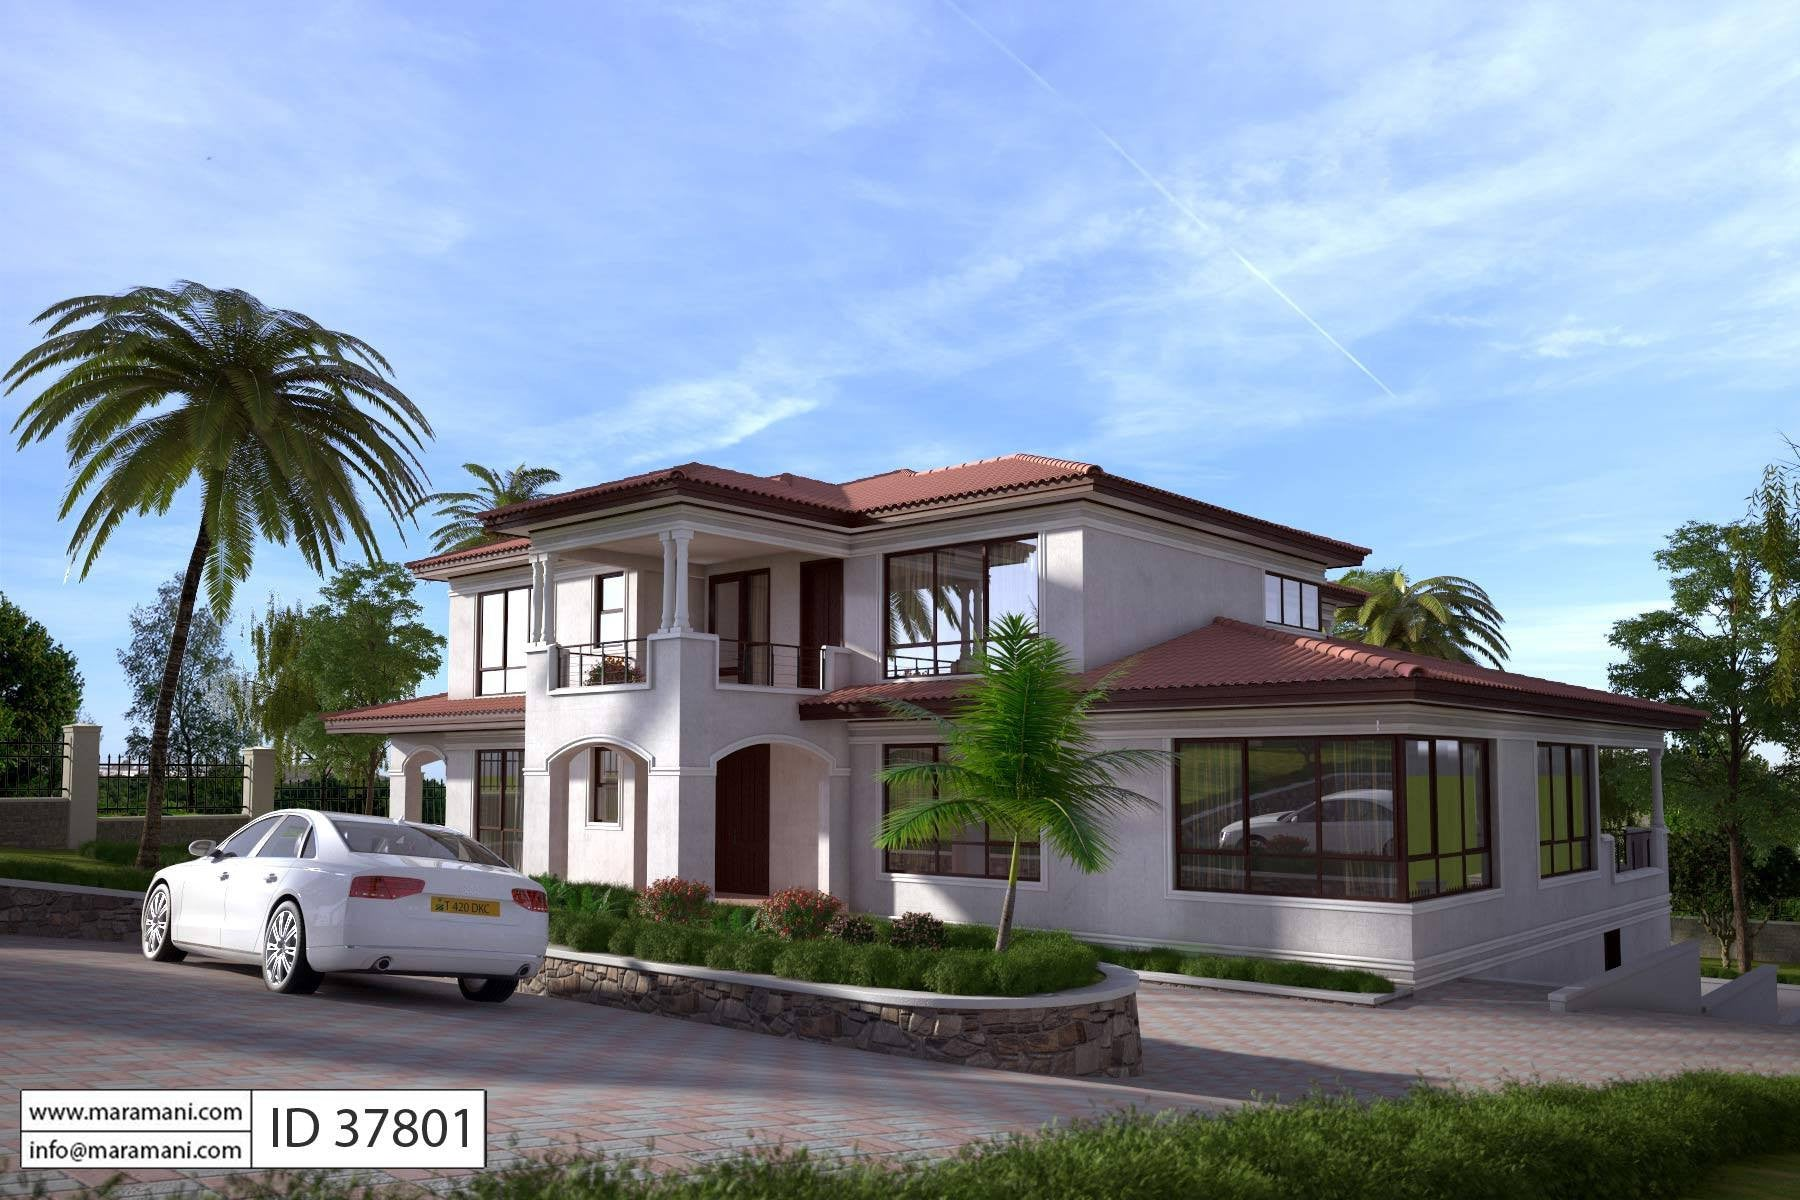 7 bedroom house design id 37801 house designs by maramani for House designers house plans